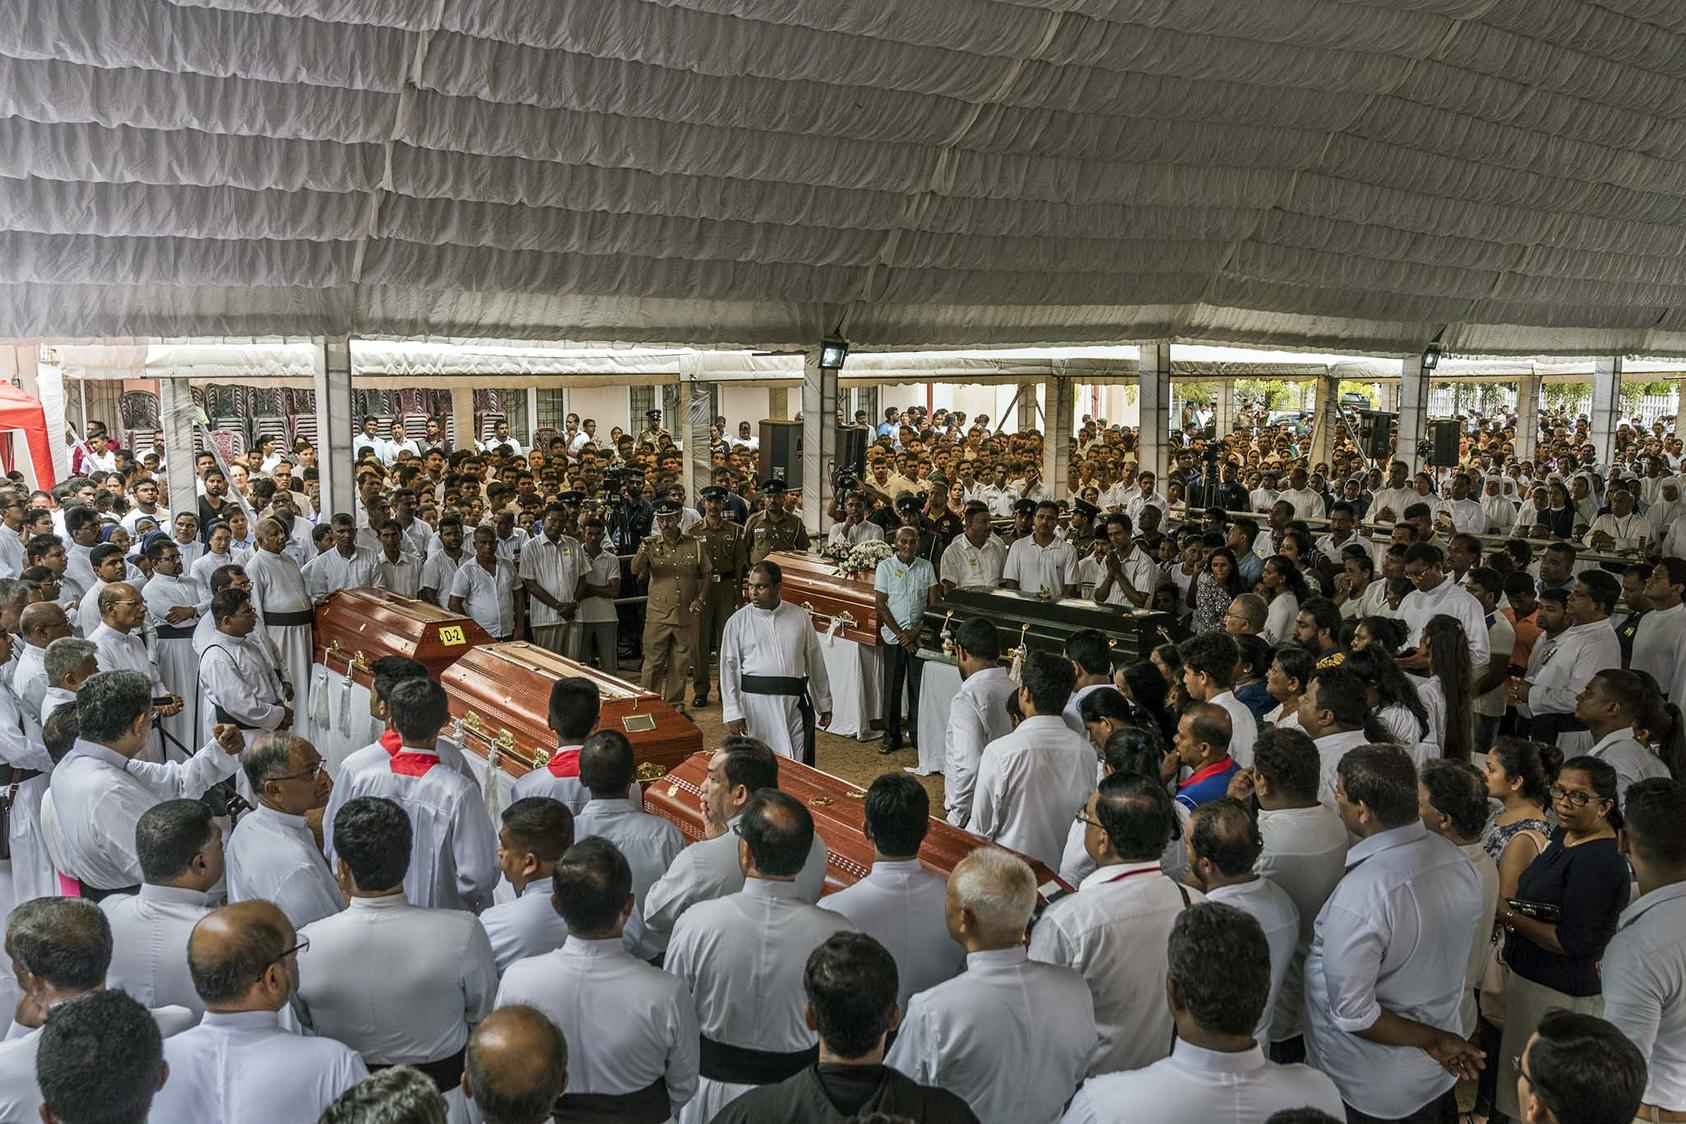 A mass funeral on Tuesday, April 23, 2019, at St. Sebastian's Church in Negombo, Sri Lanka. (Adam Dean/The New York Times)